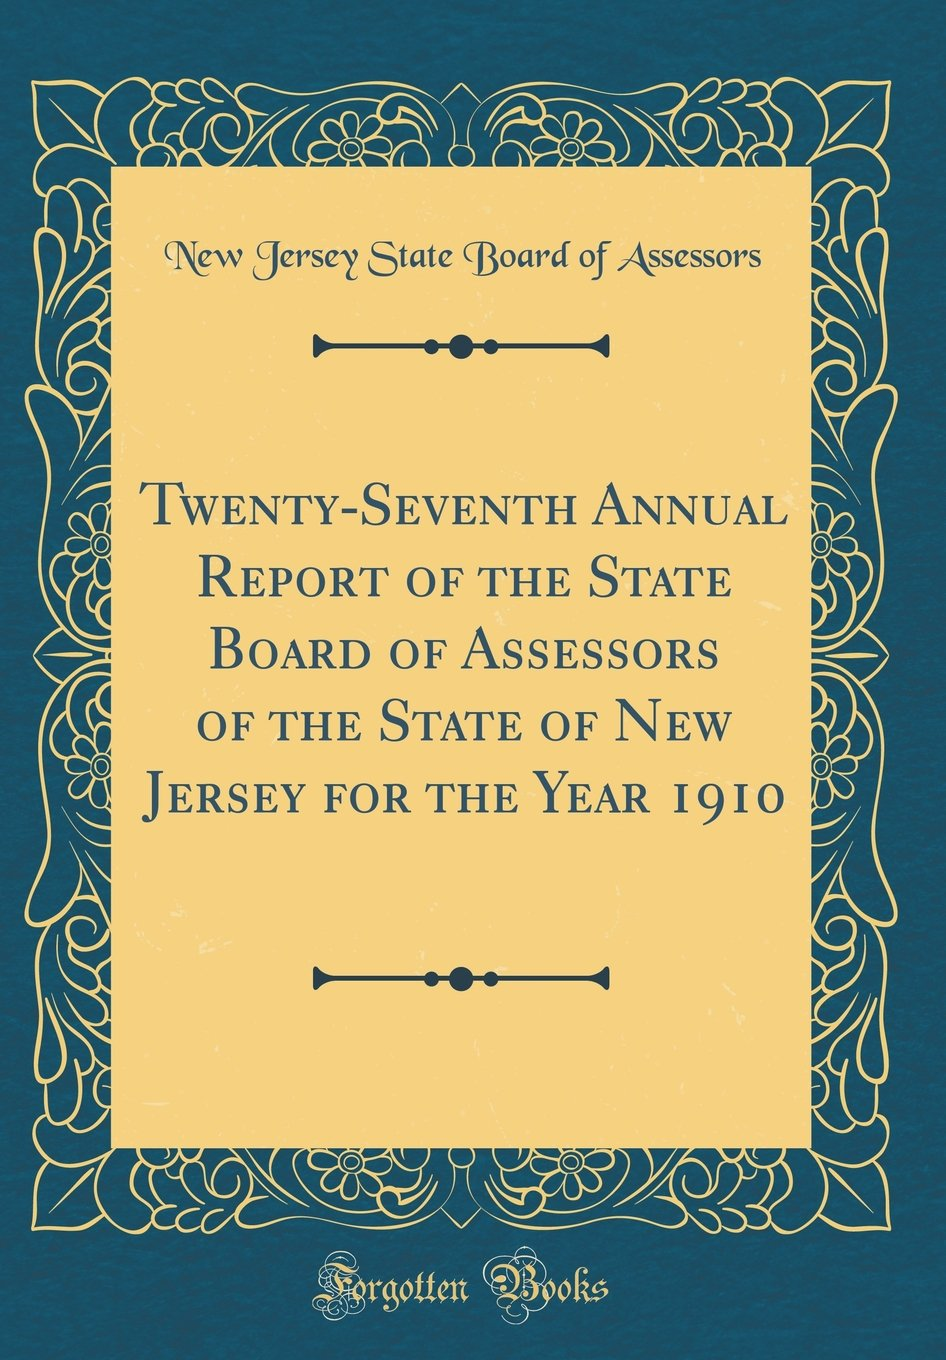 Download Twenty-Seventh Annual Report of the State Board of Assessors of the State of New Jersey for the Year 1910 (Classic Reprint) PDF